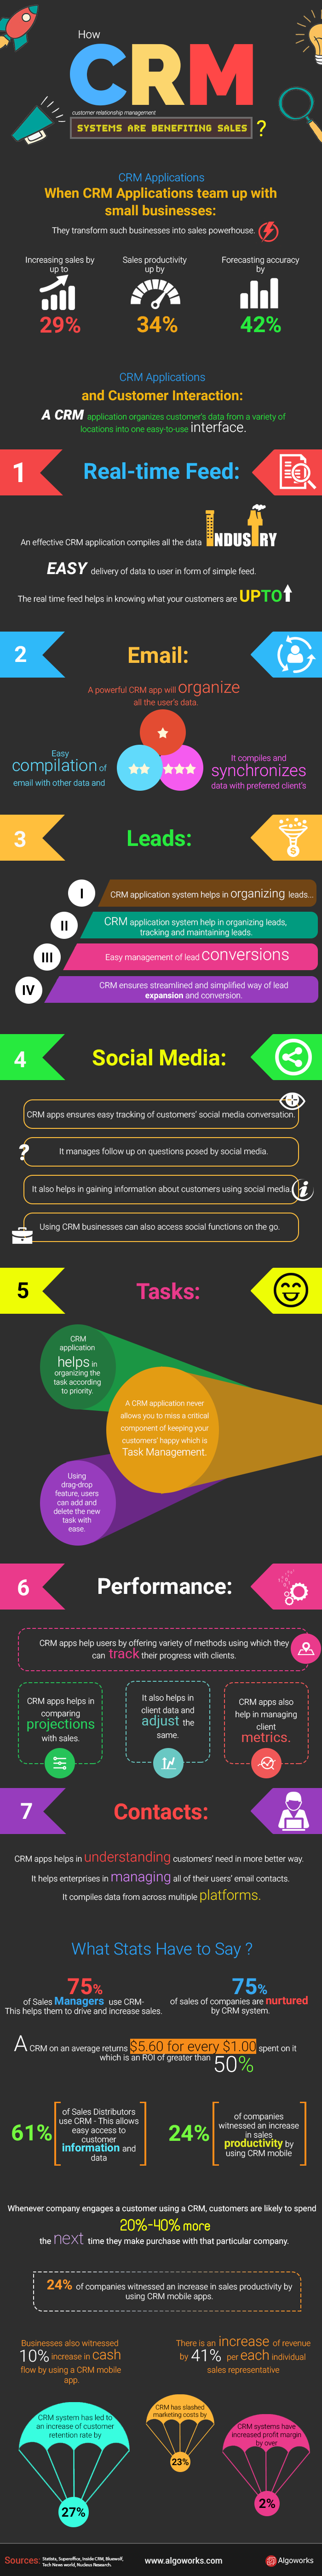 How CRM Systems Are Benefiting Sales? | An Infographic